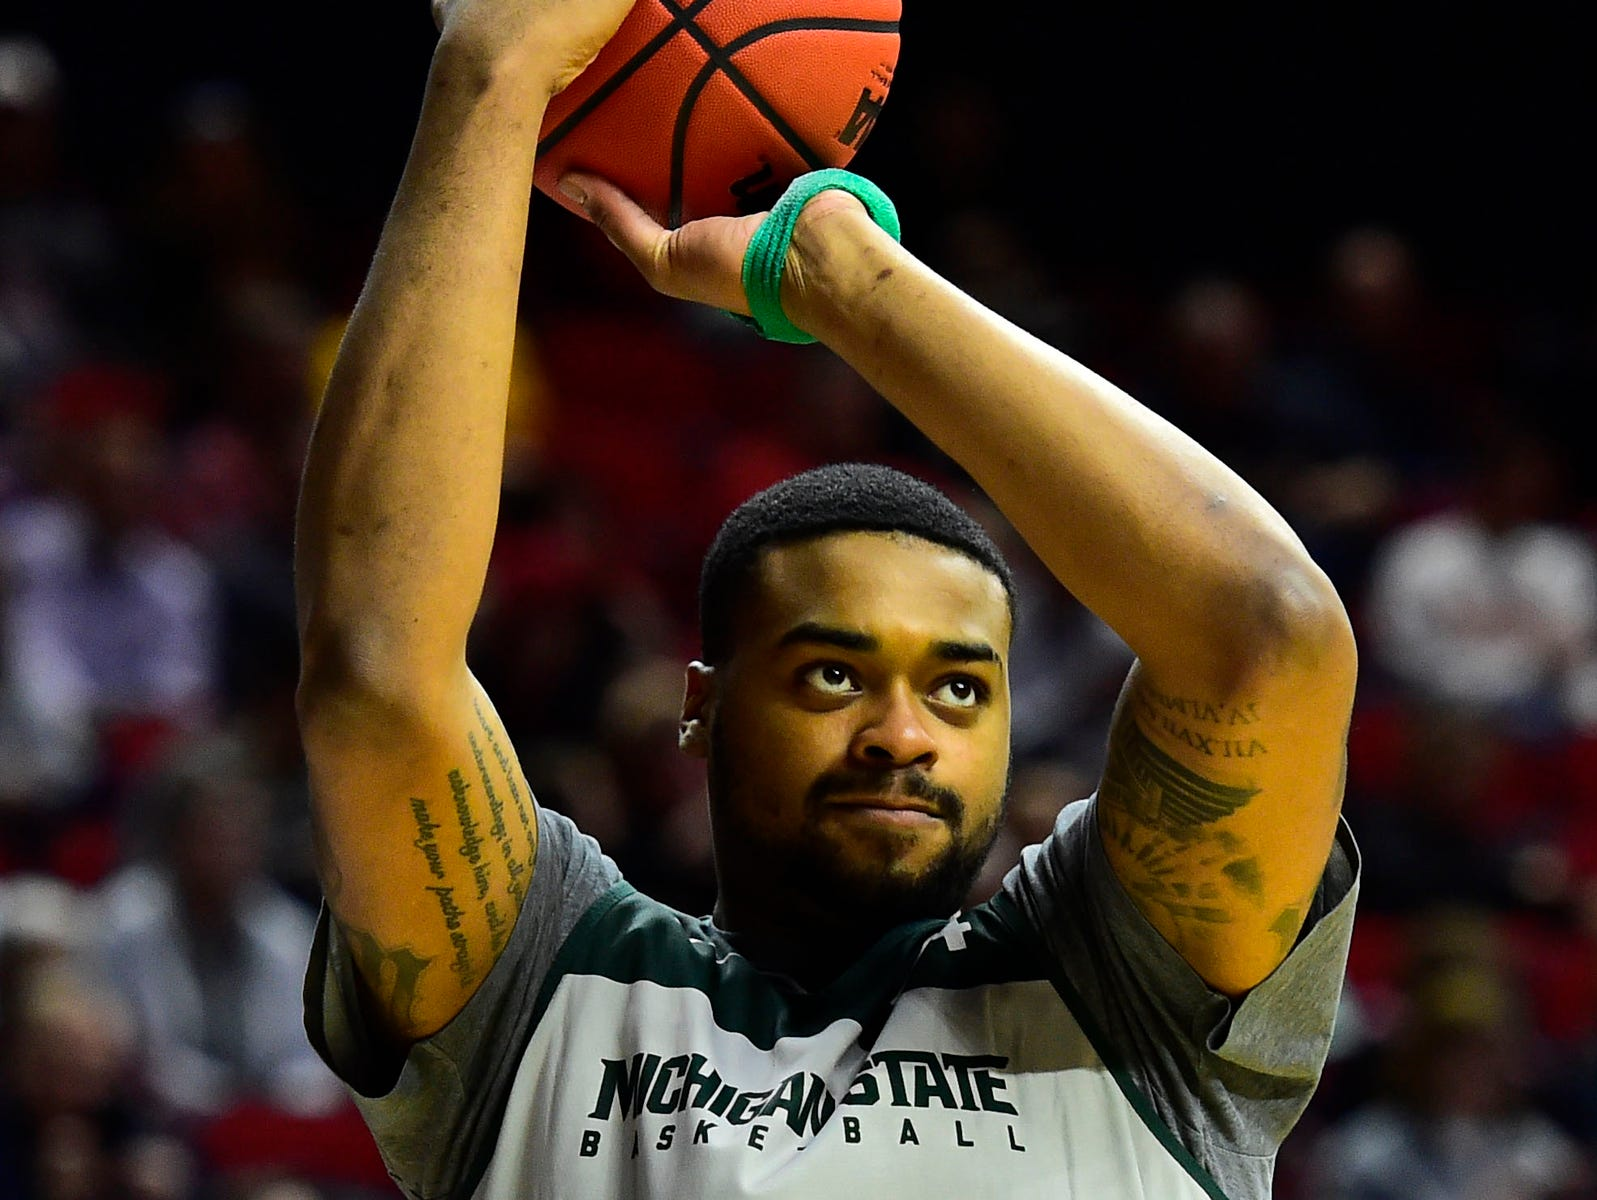 Mar 20, 2019; Des Moines, IA, USA; Michigan State Spartans forward Nick Ward (44) during practice before the first round of the 2019 NCAA Tournament at Wells Fargo Arena. Mandatory Credit: Steven Branscombe-USA TODAY Sports